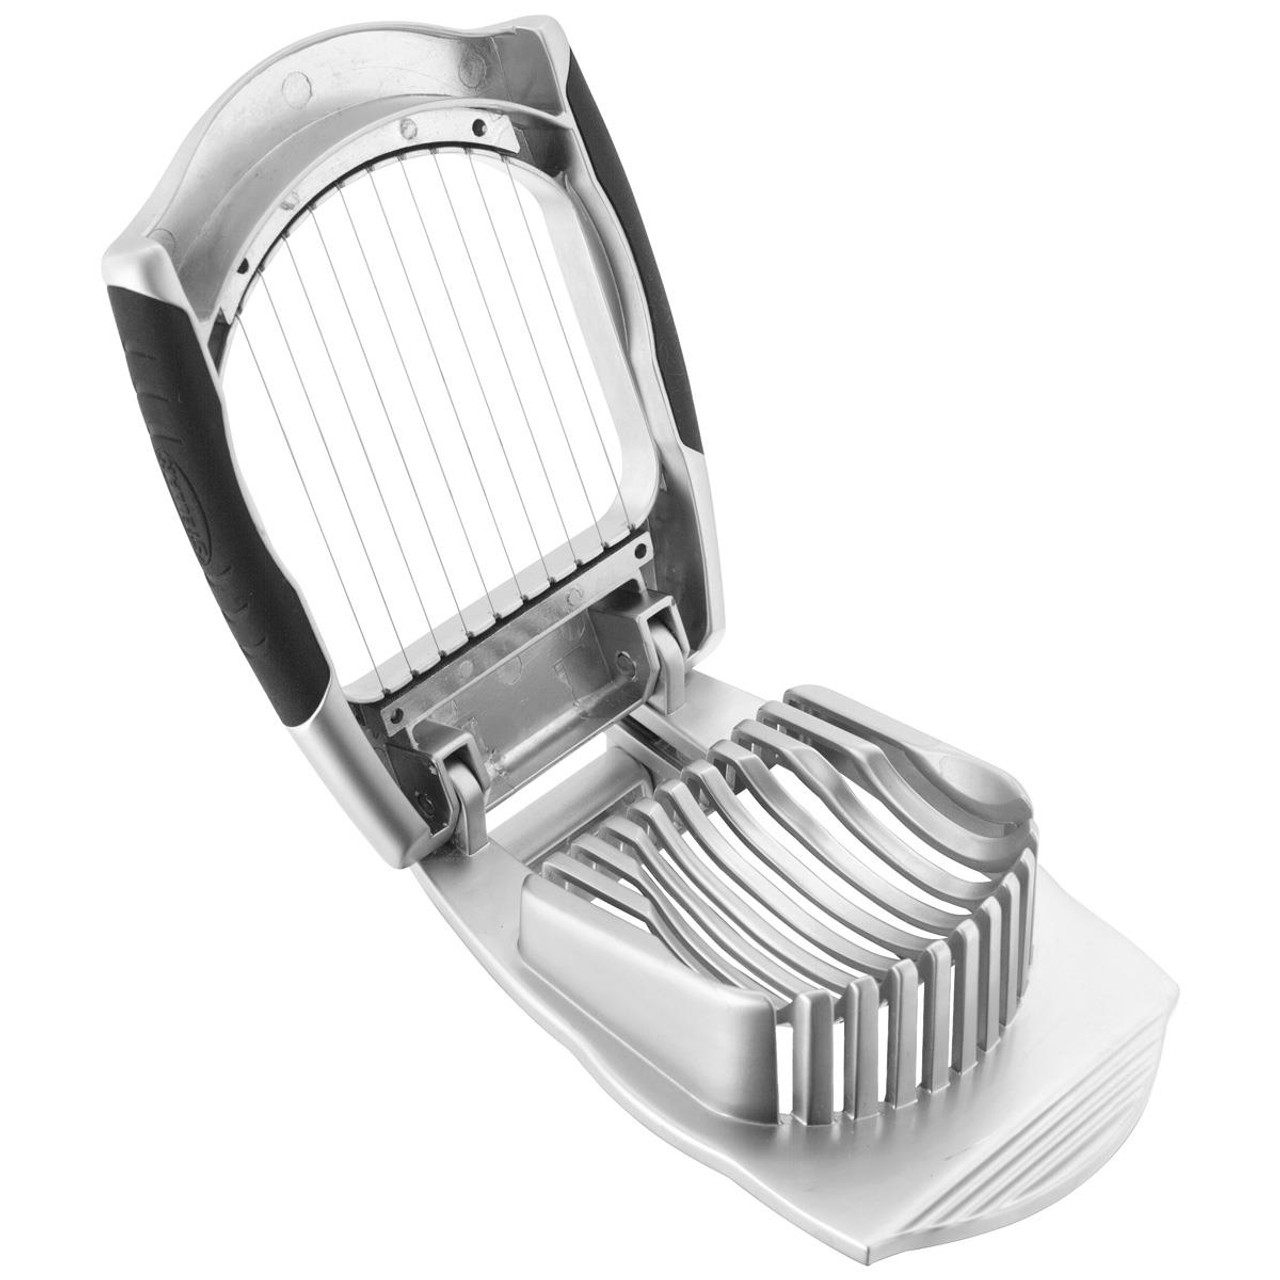 Stellar Soft Touch Gadgets Egg Slicer